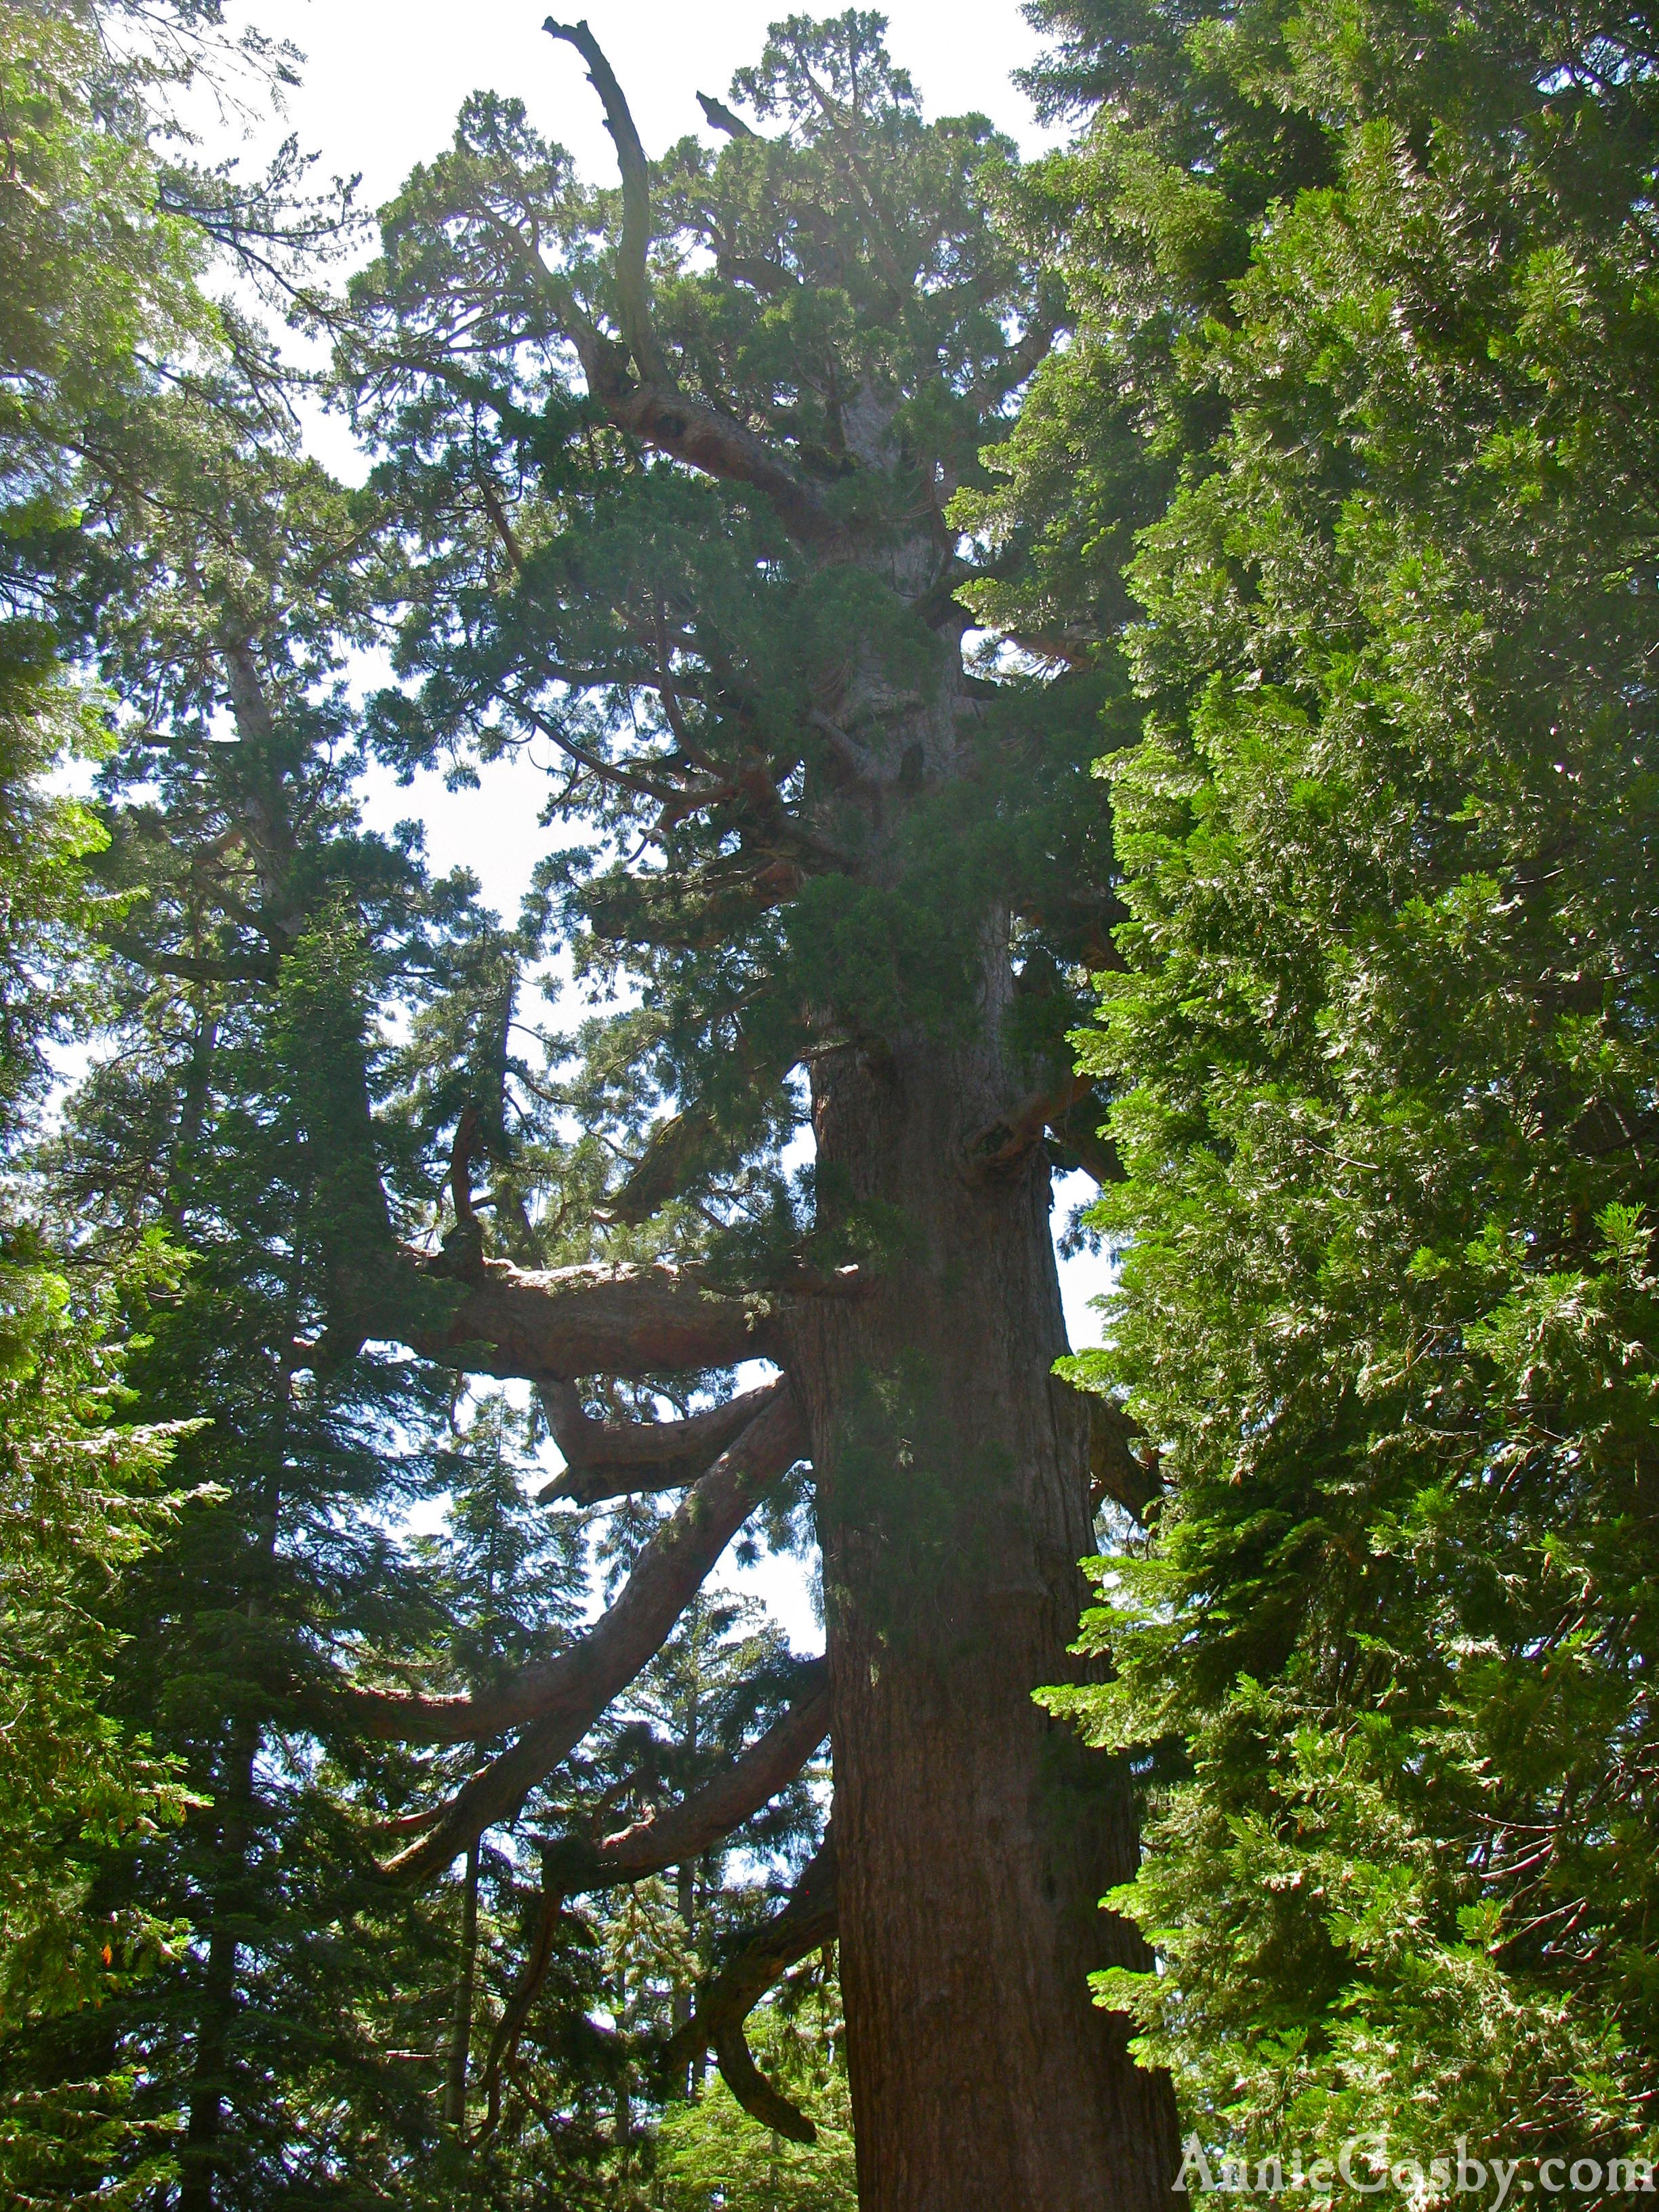 The Grizzly Giant, Mariposa Grove, California